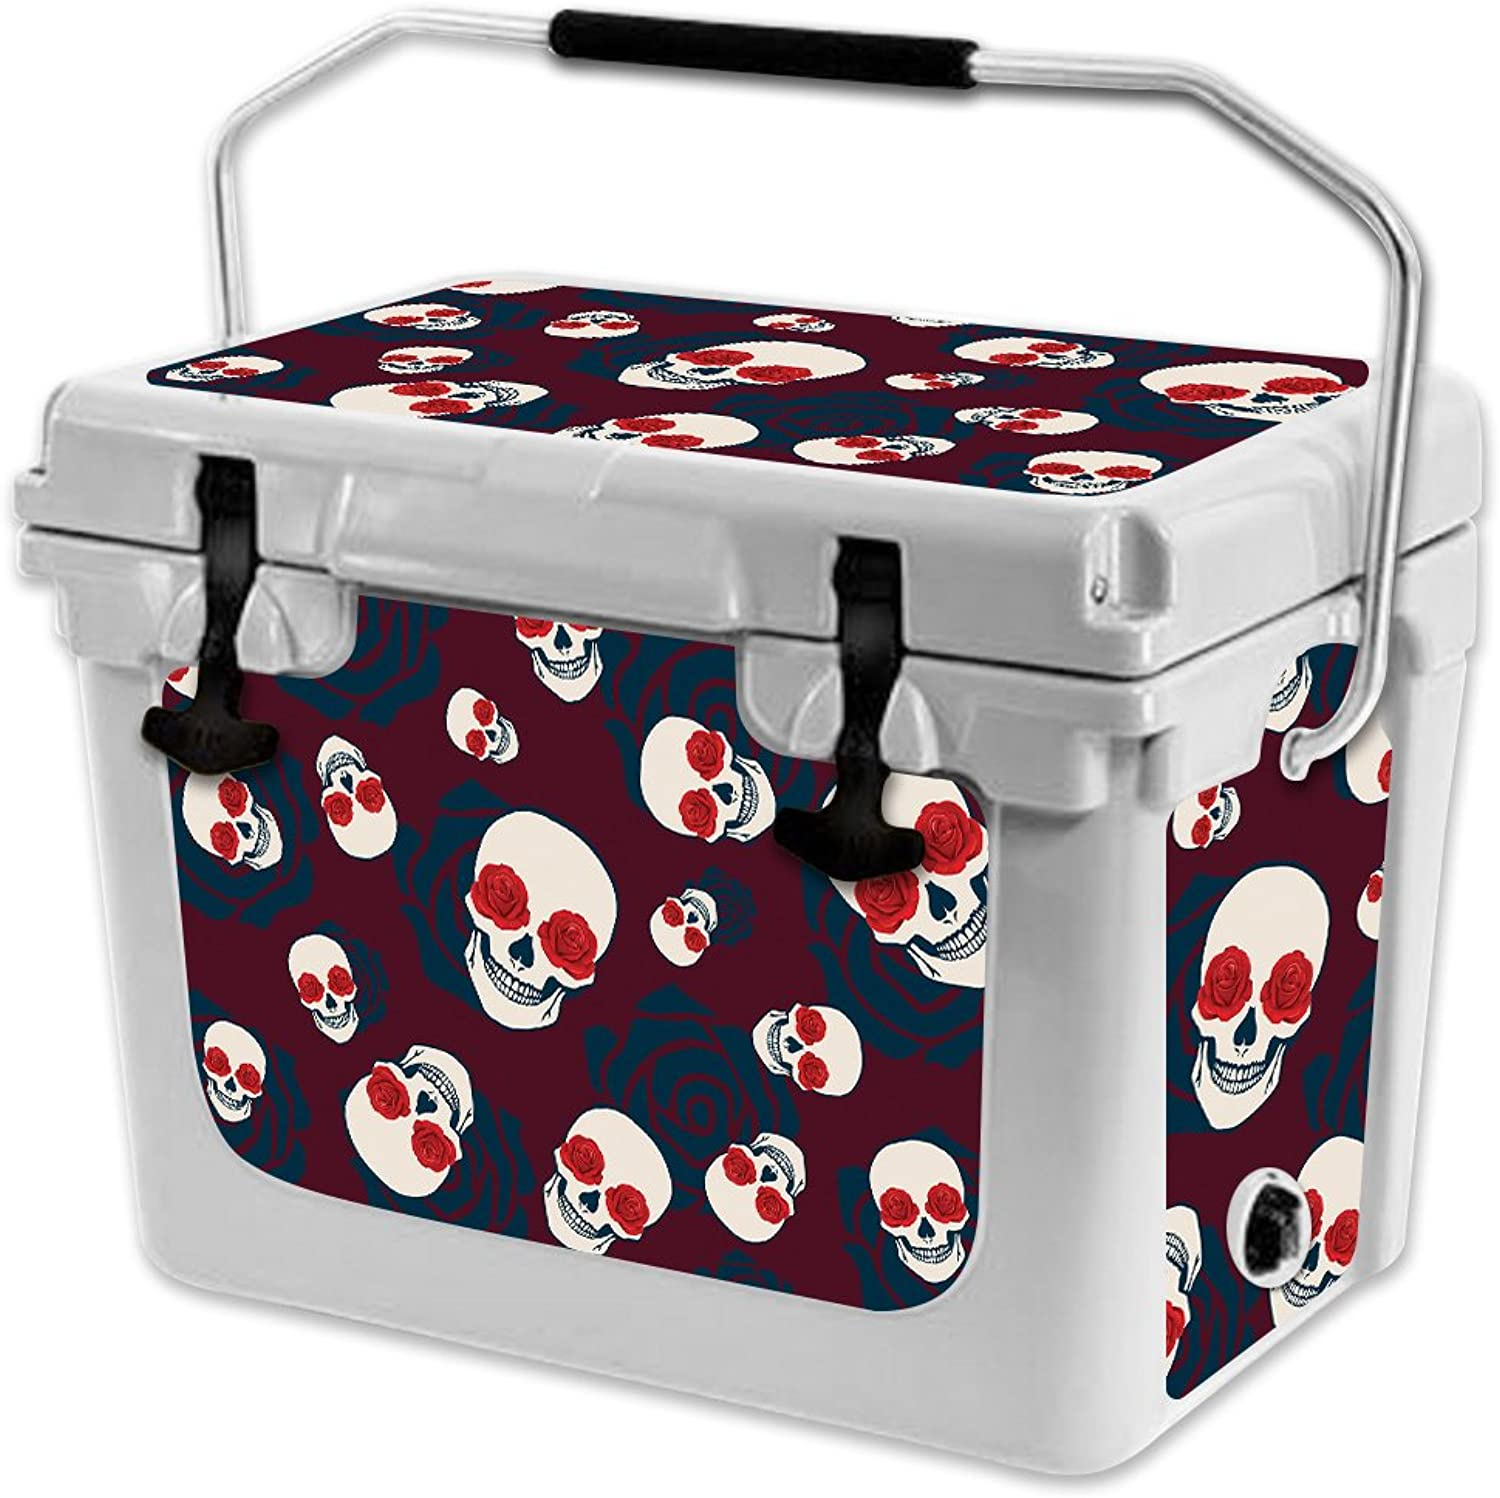 MightySkins Skin Compatible with RTIC 20 Cooler (2017 Model)  Skulls N pinks   Predective, Durable, and Unique Vinyl Decal wrap Cover   Easy to Apply, Remove, and Change Styles   Made in The USA